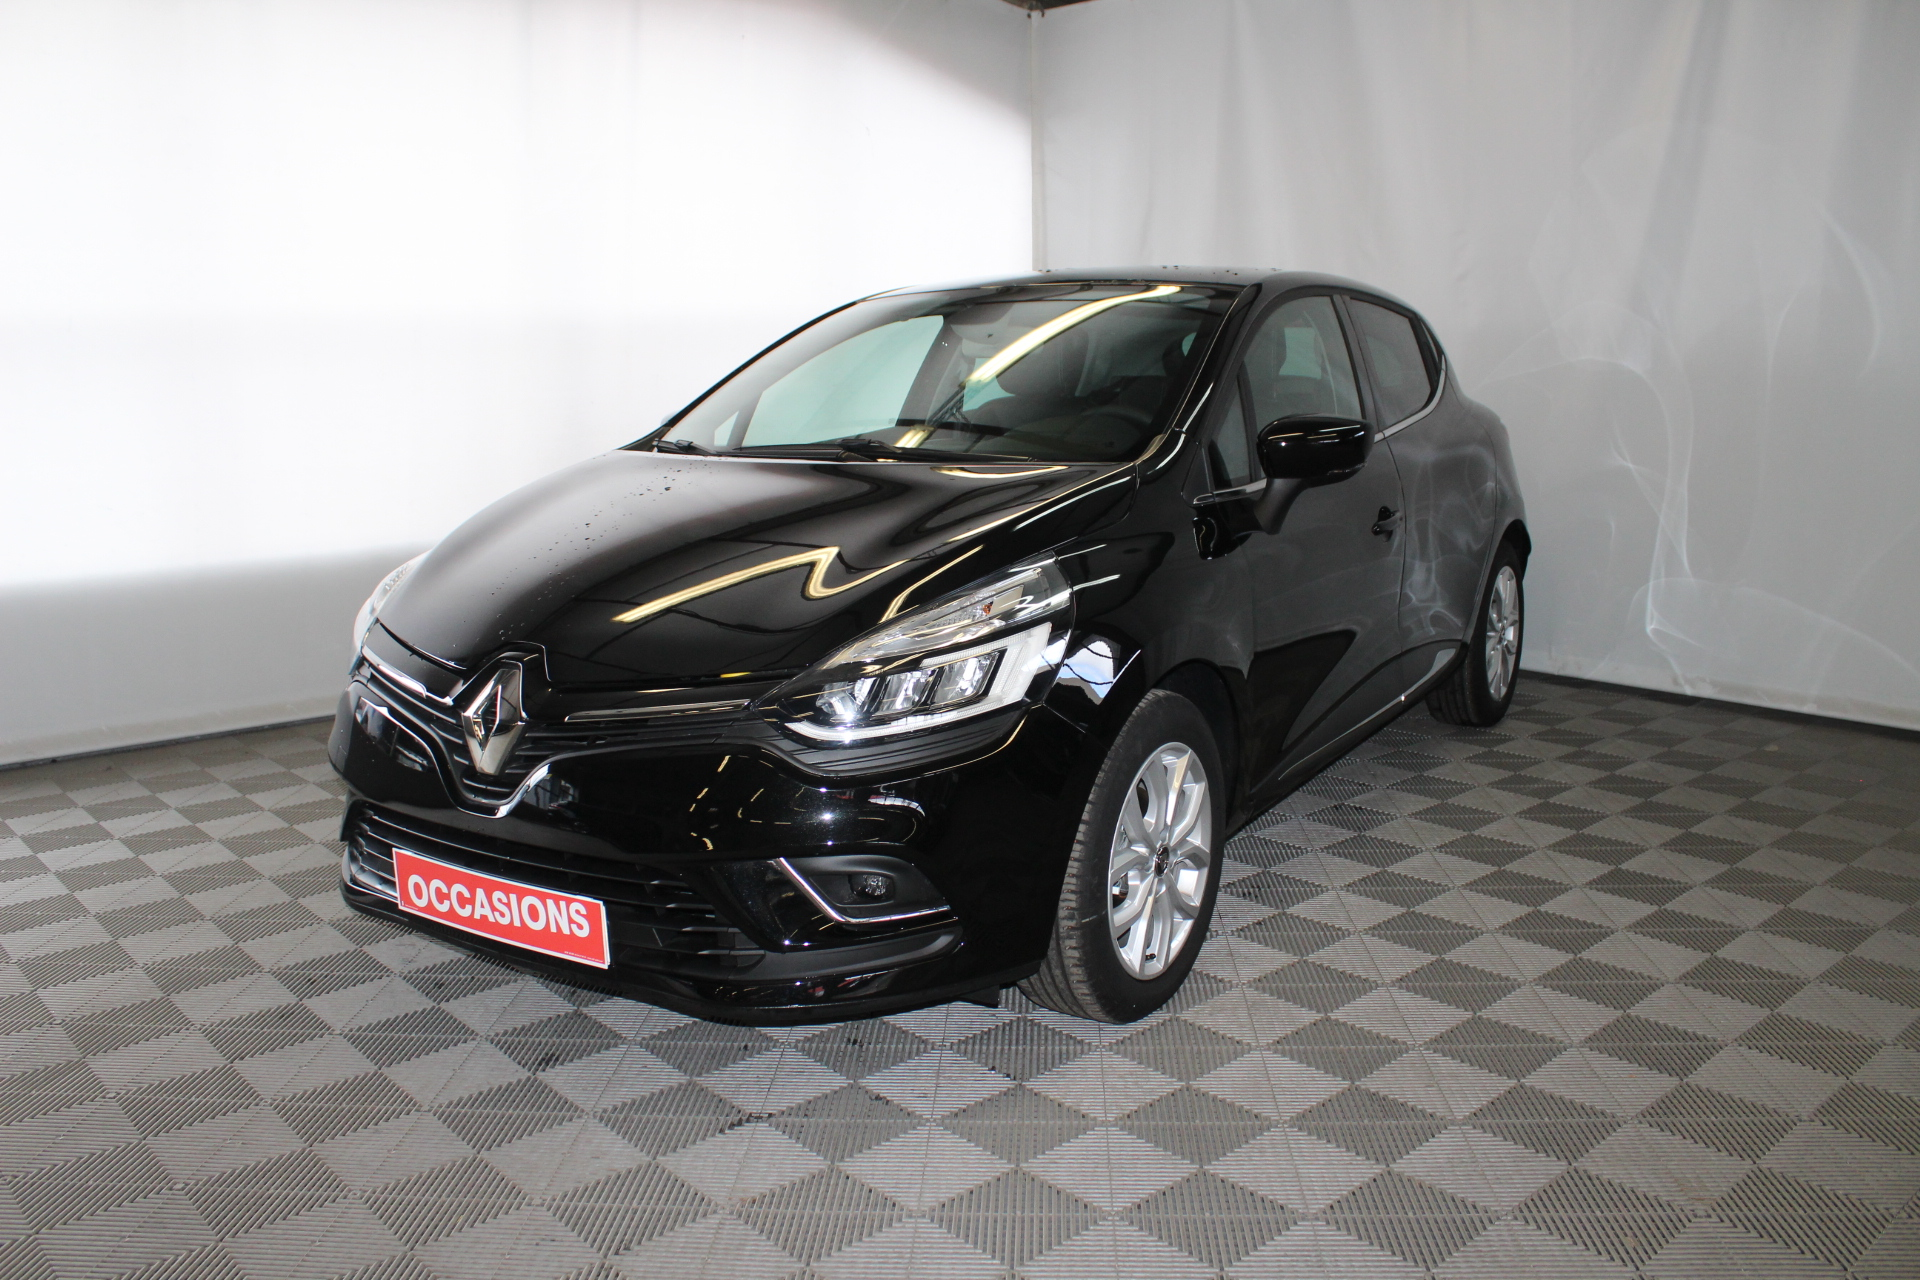 RENAULT CLIO IV 2019 à 13900 € - Photo n°1